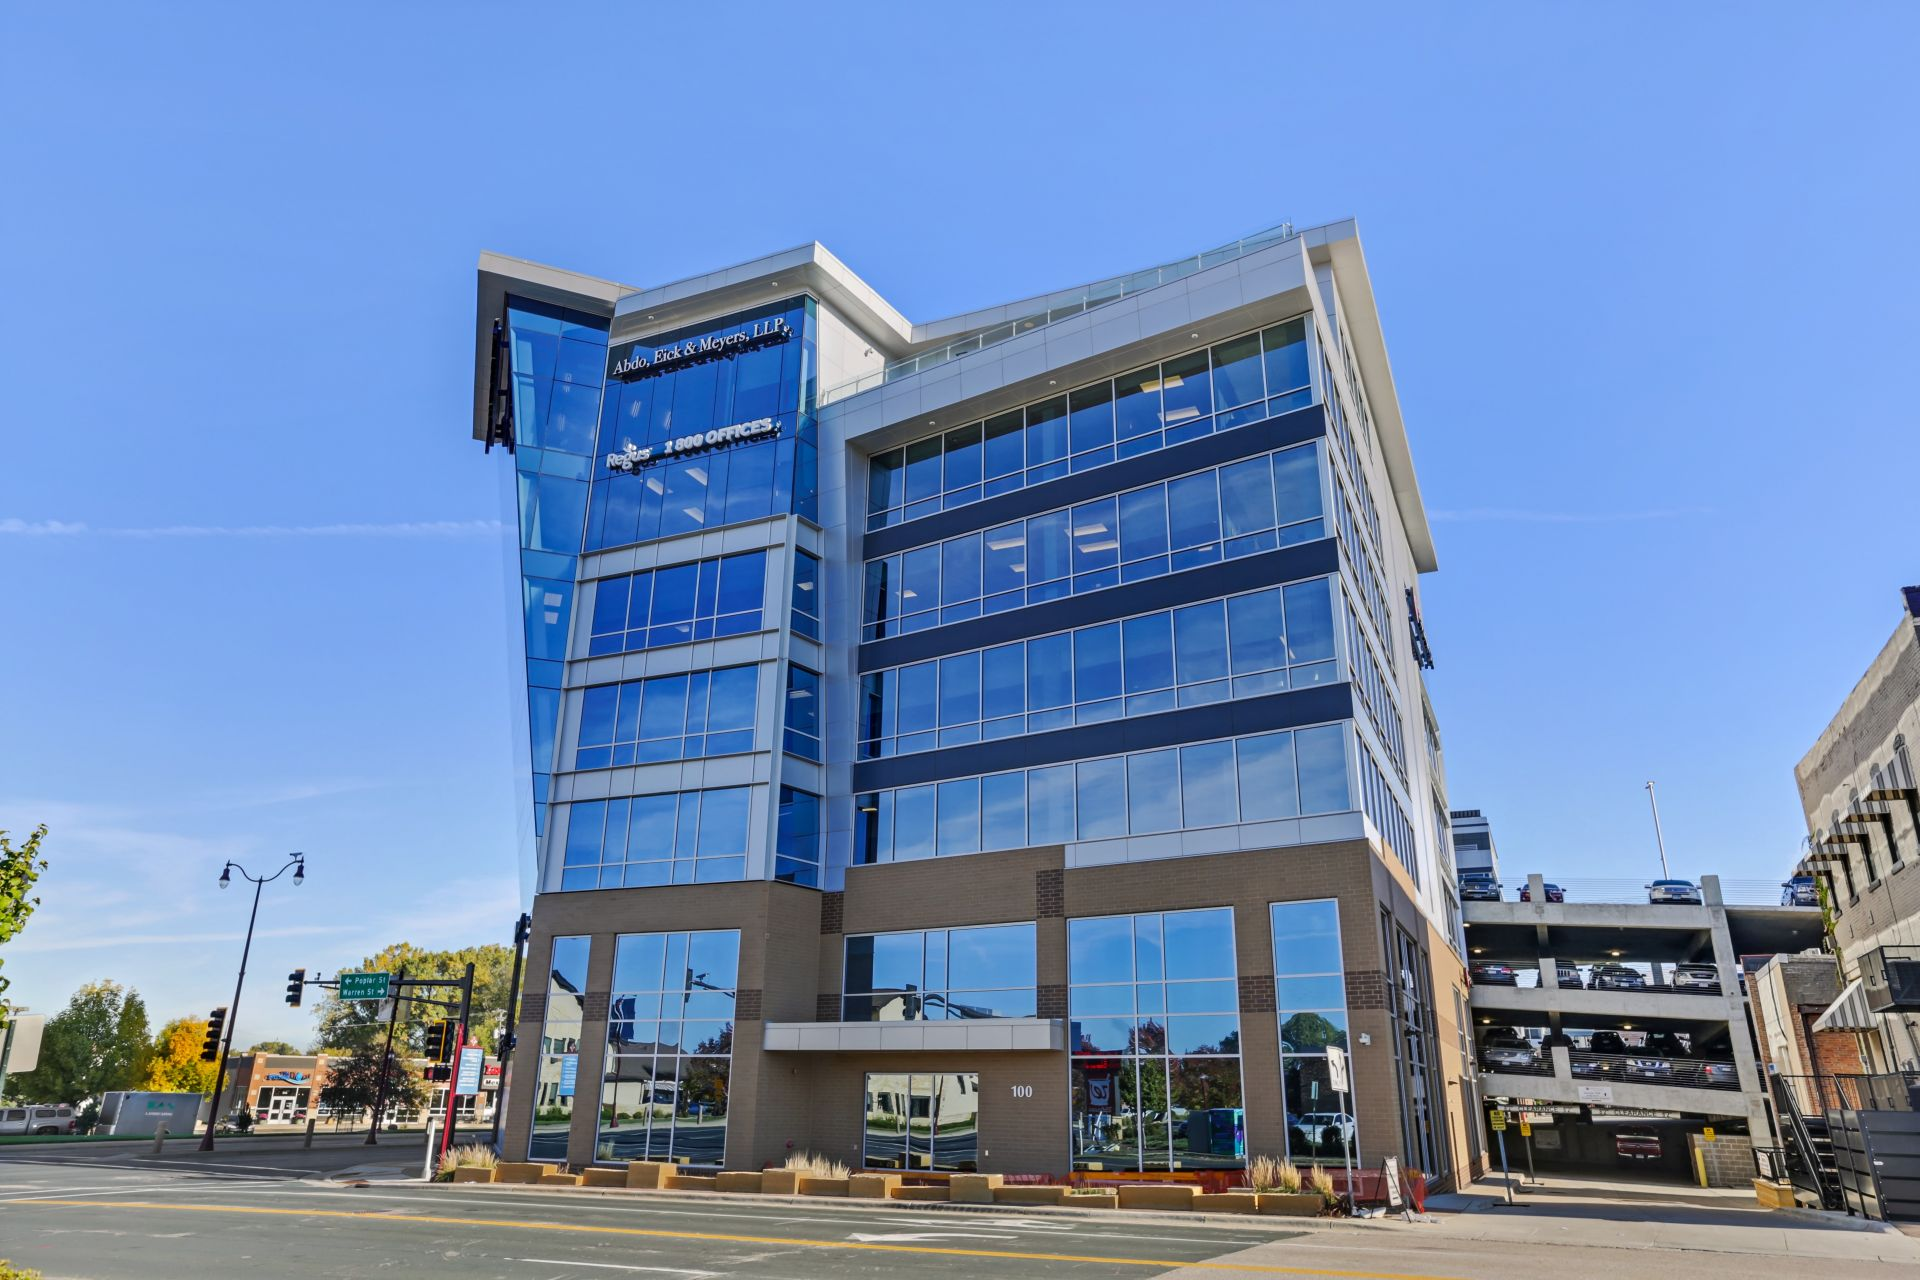 Regus Mankato Riverfront, Mankato